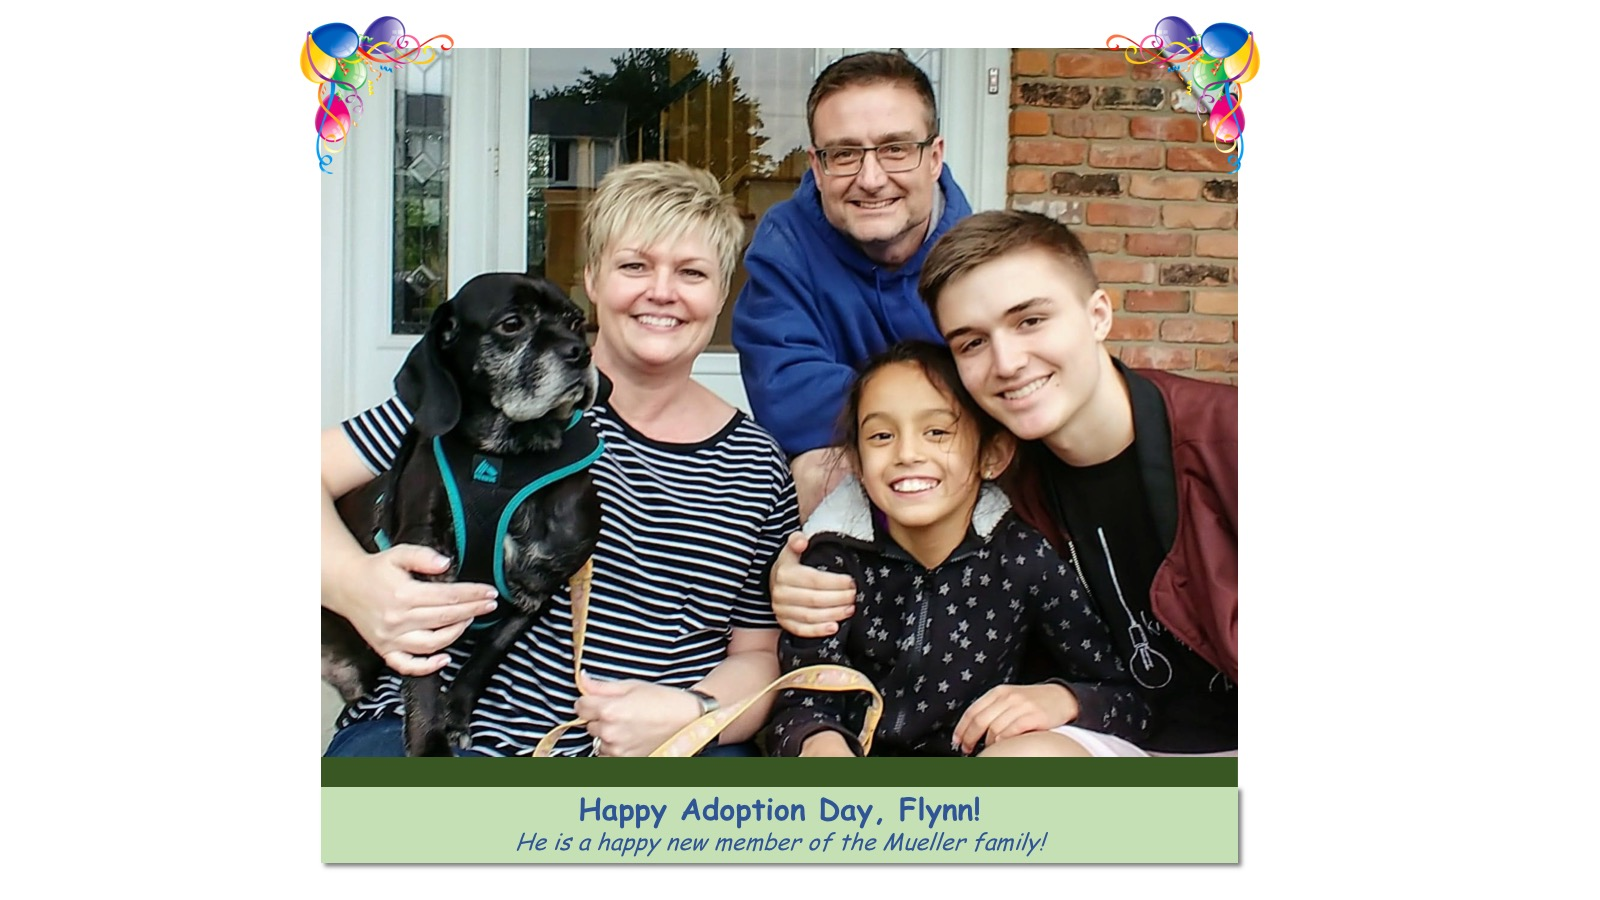 Flynn_Adoption_Photo_2018.jpg